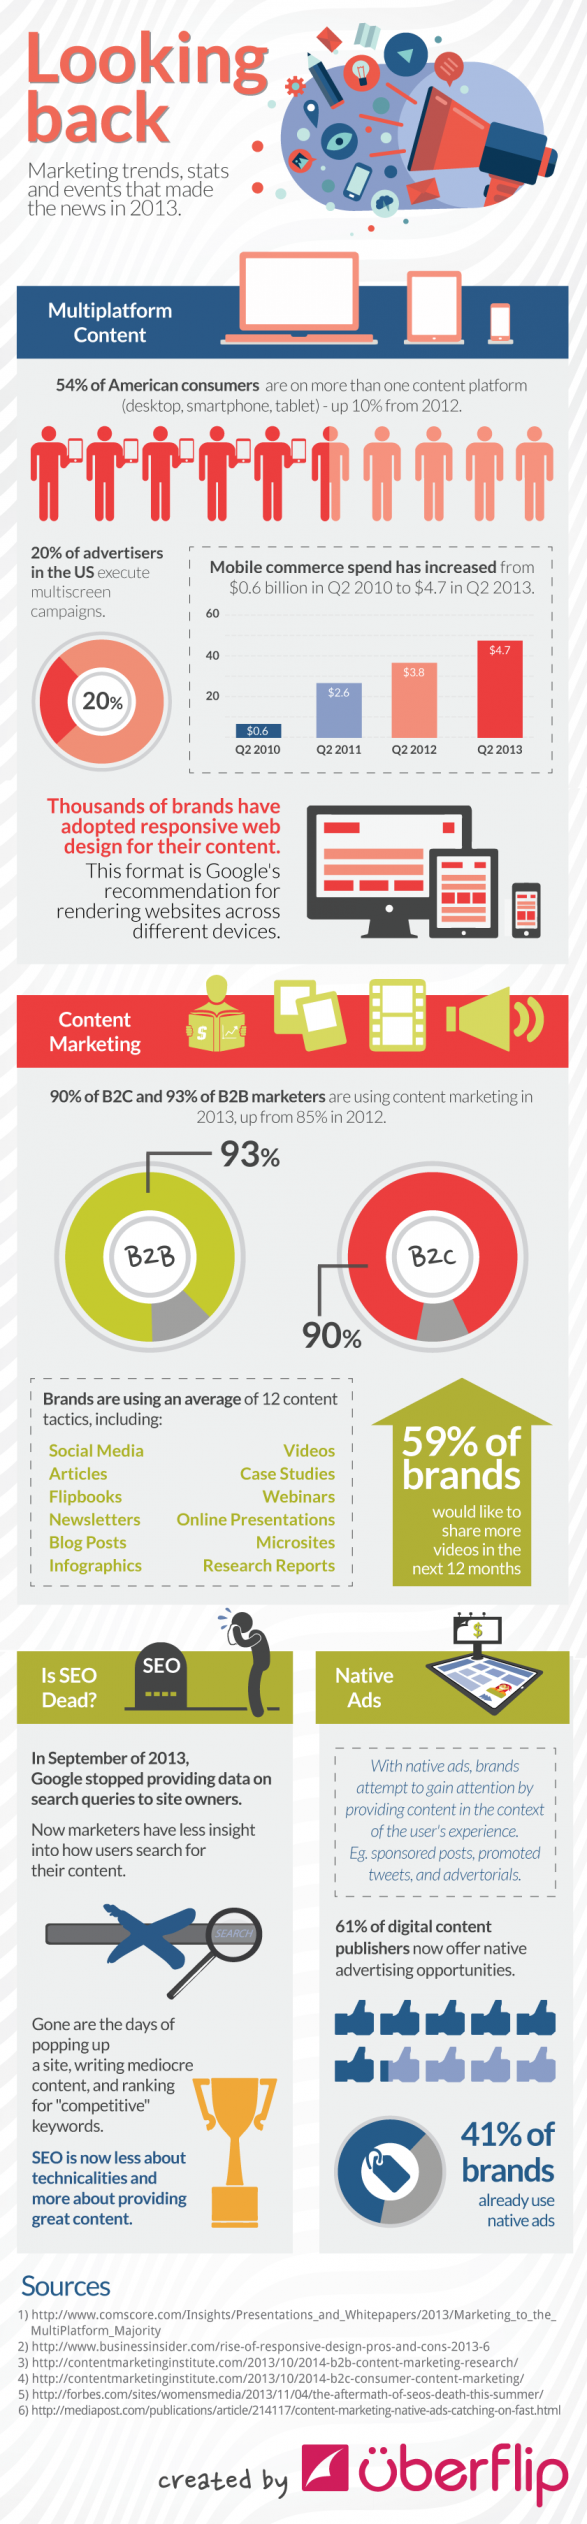 A Look Back At Marketing Trends Of 2013